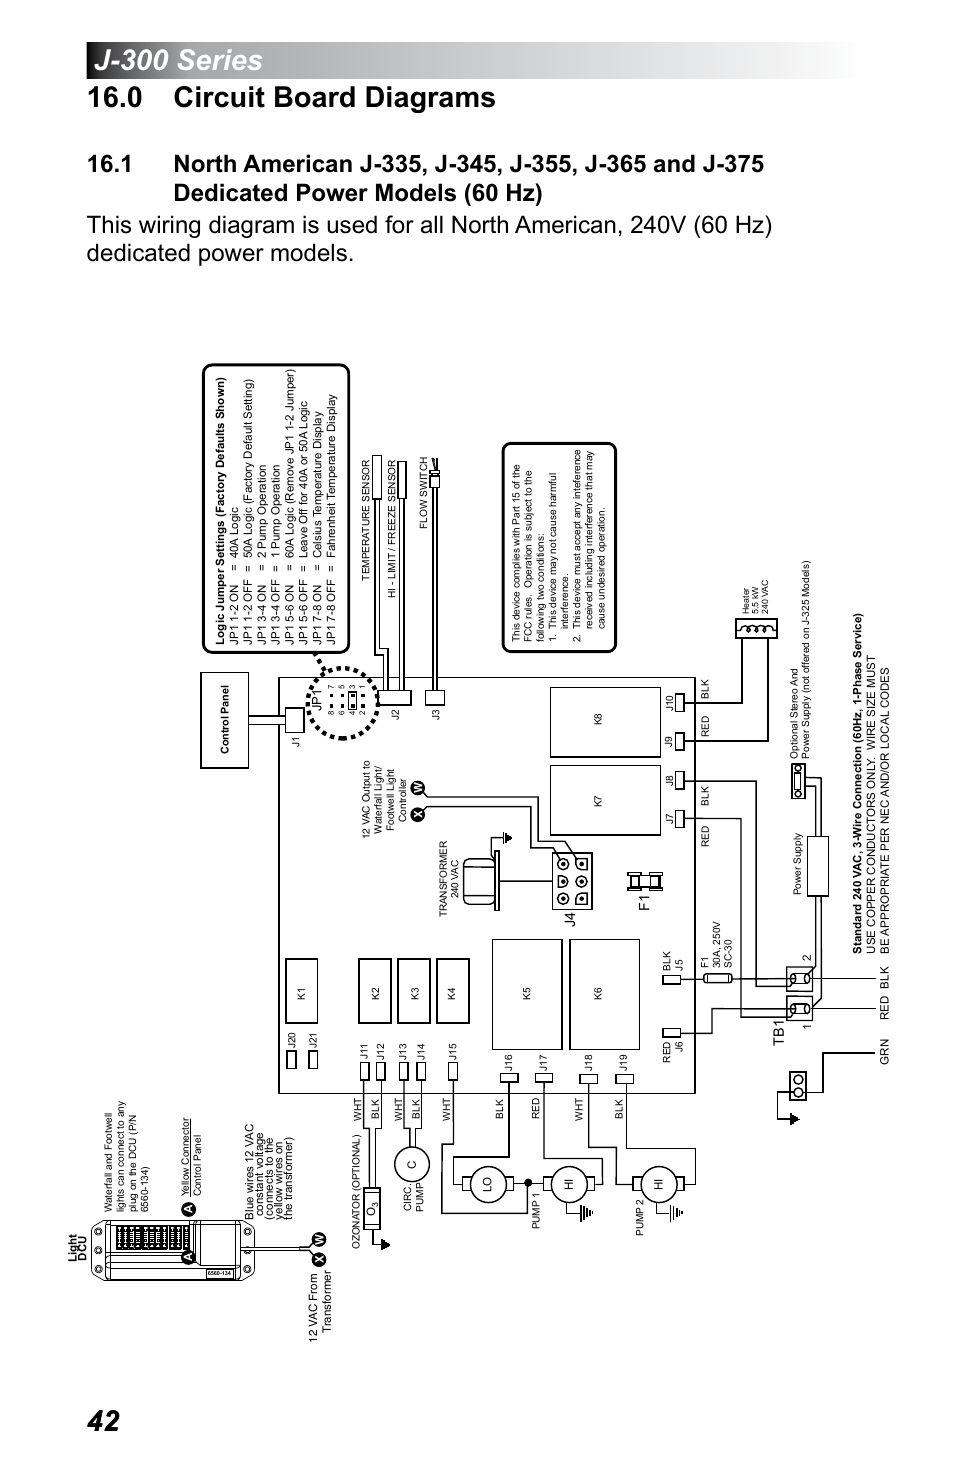 52 Chevy Headlight Switch Wiring Diagram Will Be A Thing Painless Diagrams 1950 3100 0 Circuit Board Dedicated Power Models 60 Hz 1968 Ford